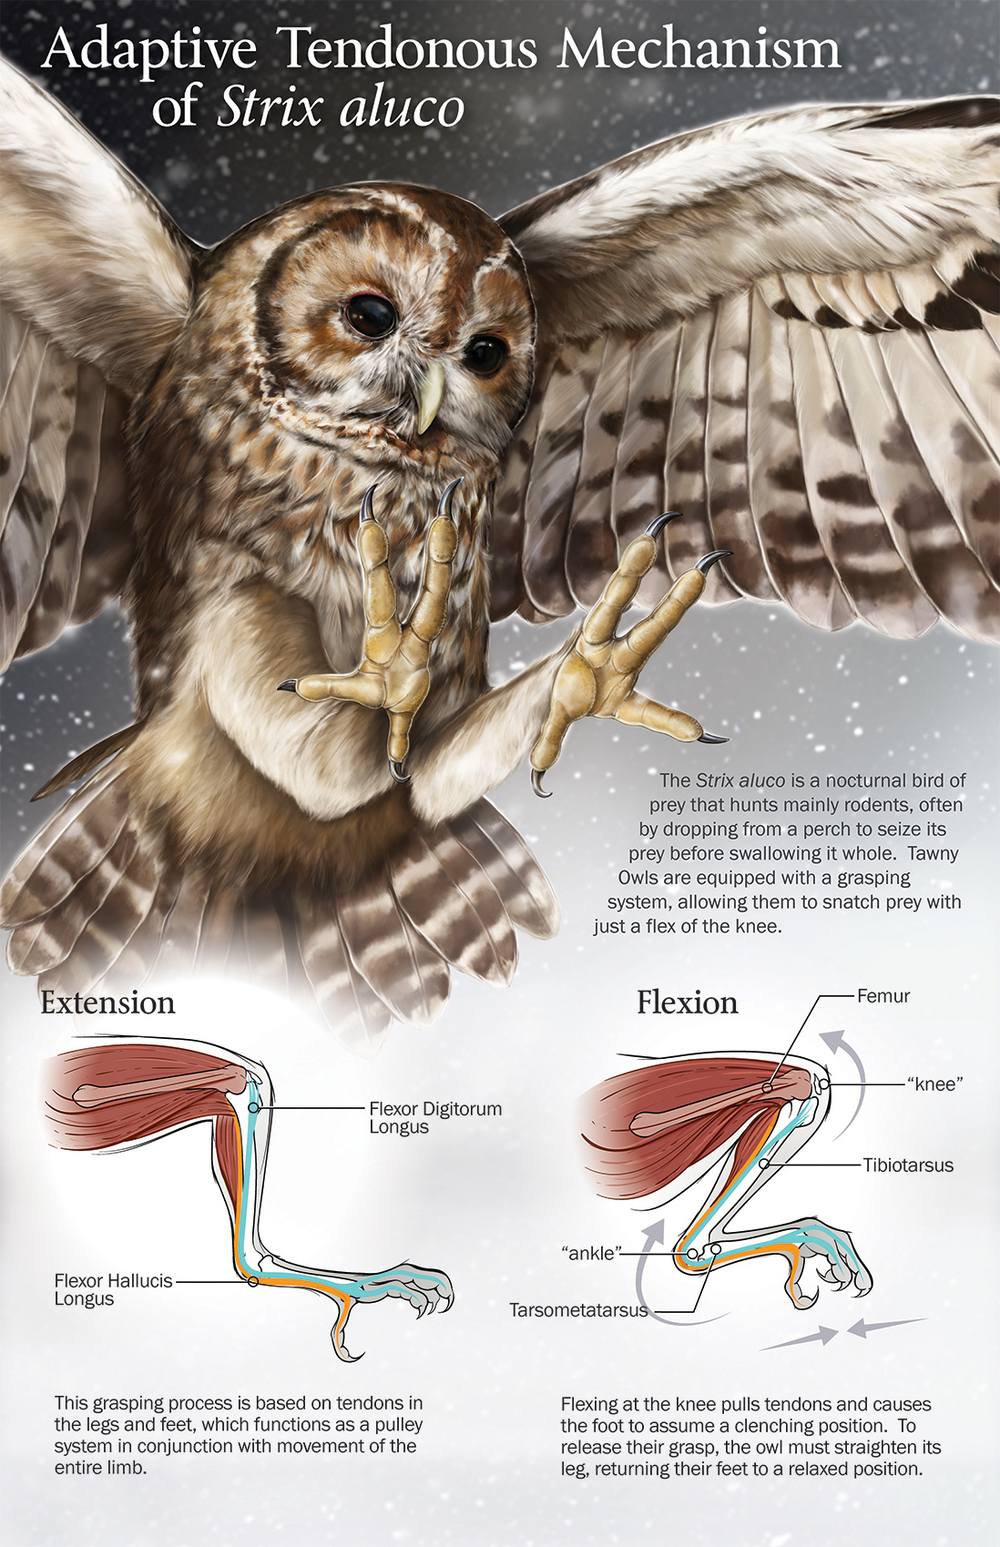 Zoological Illustration of the Tawny Owl